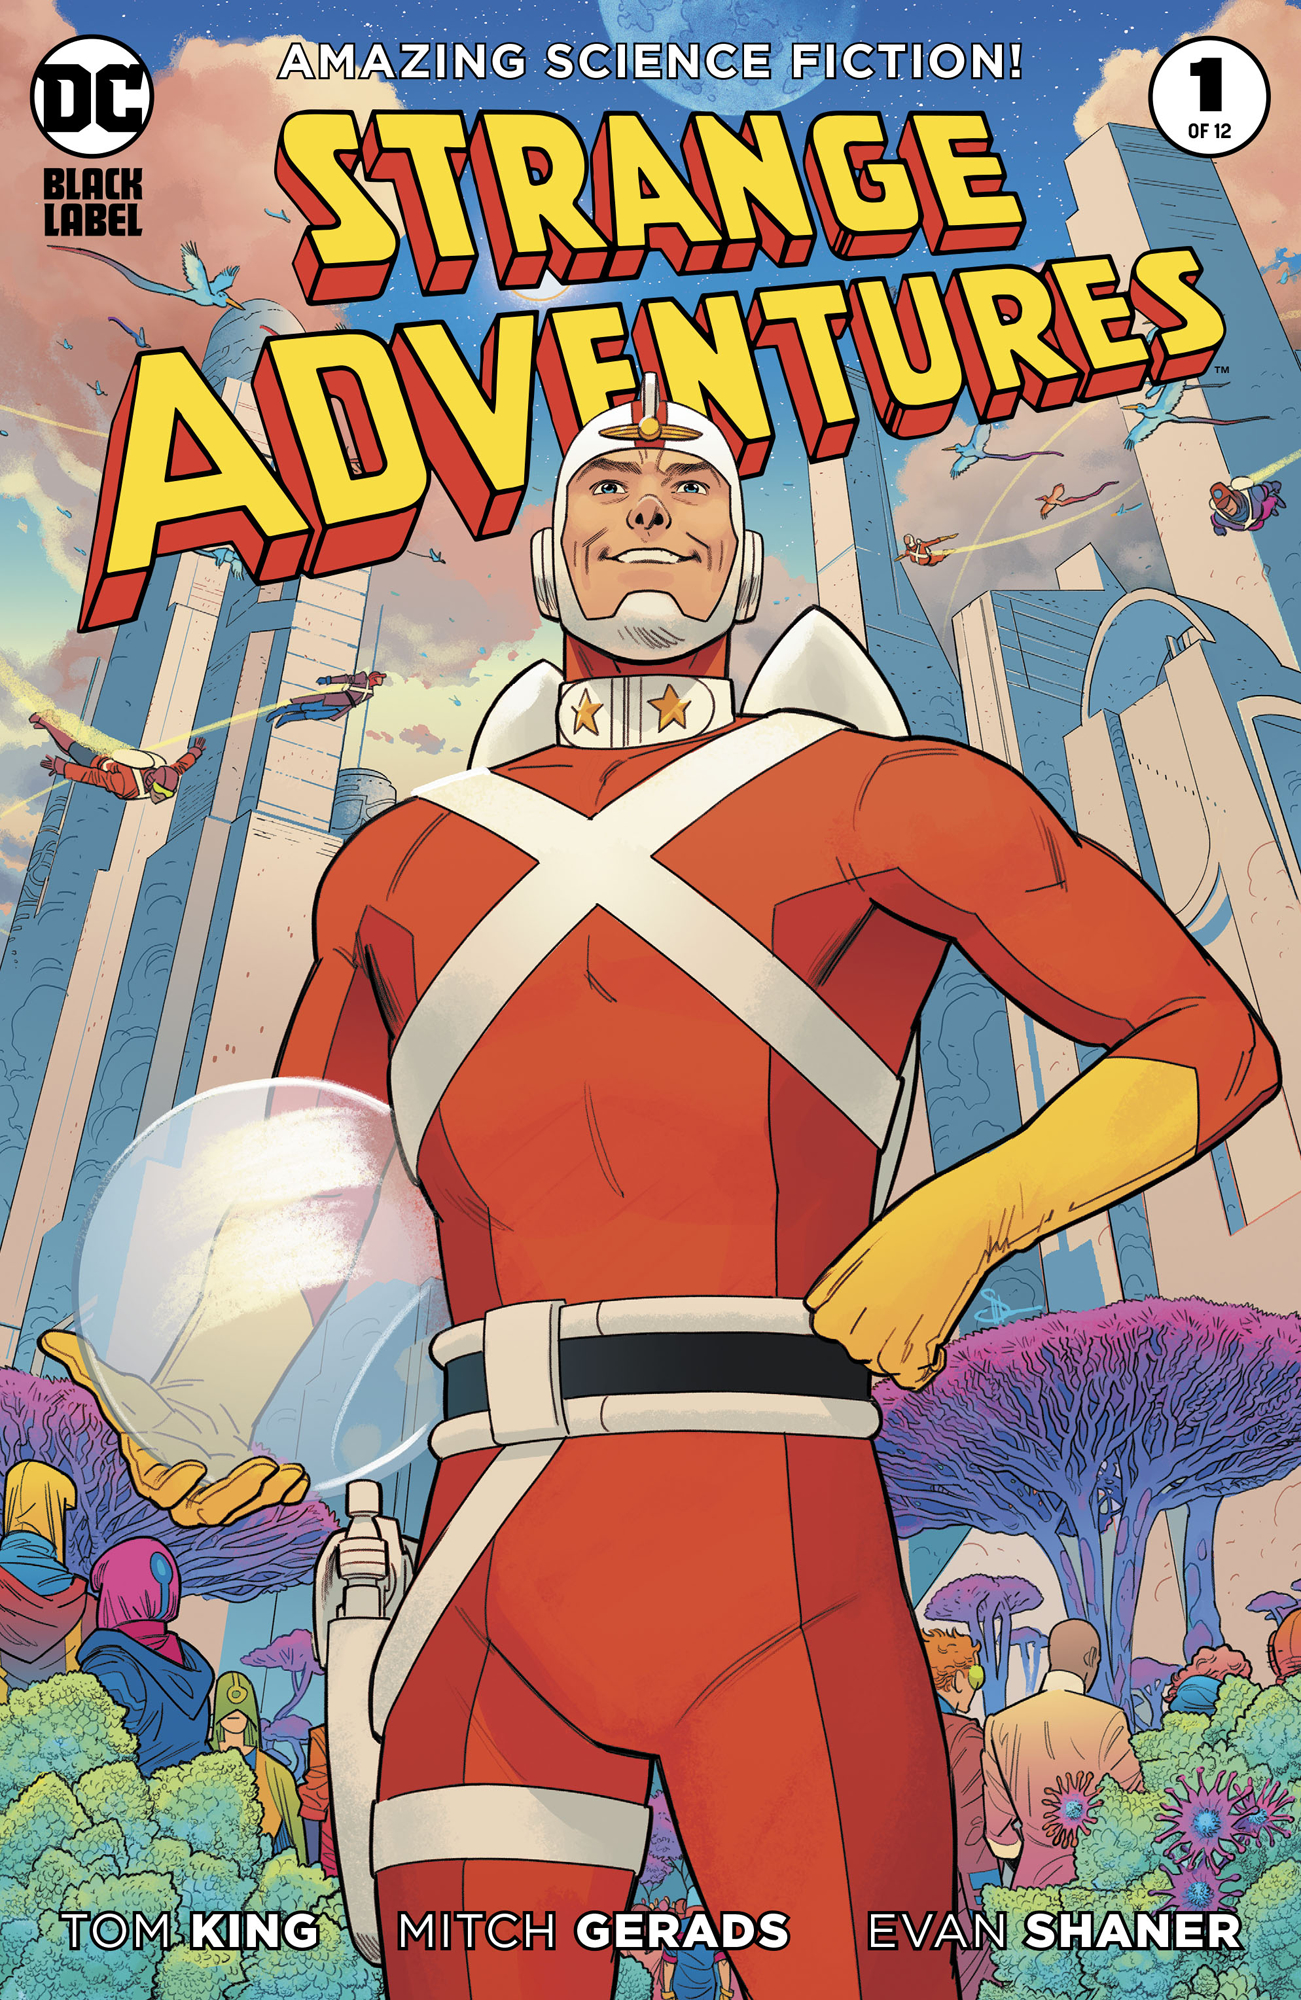 STRANGE ADVENTURES #1 (OF 12) EVAN SHANER VAR ED